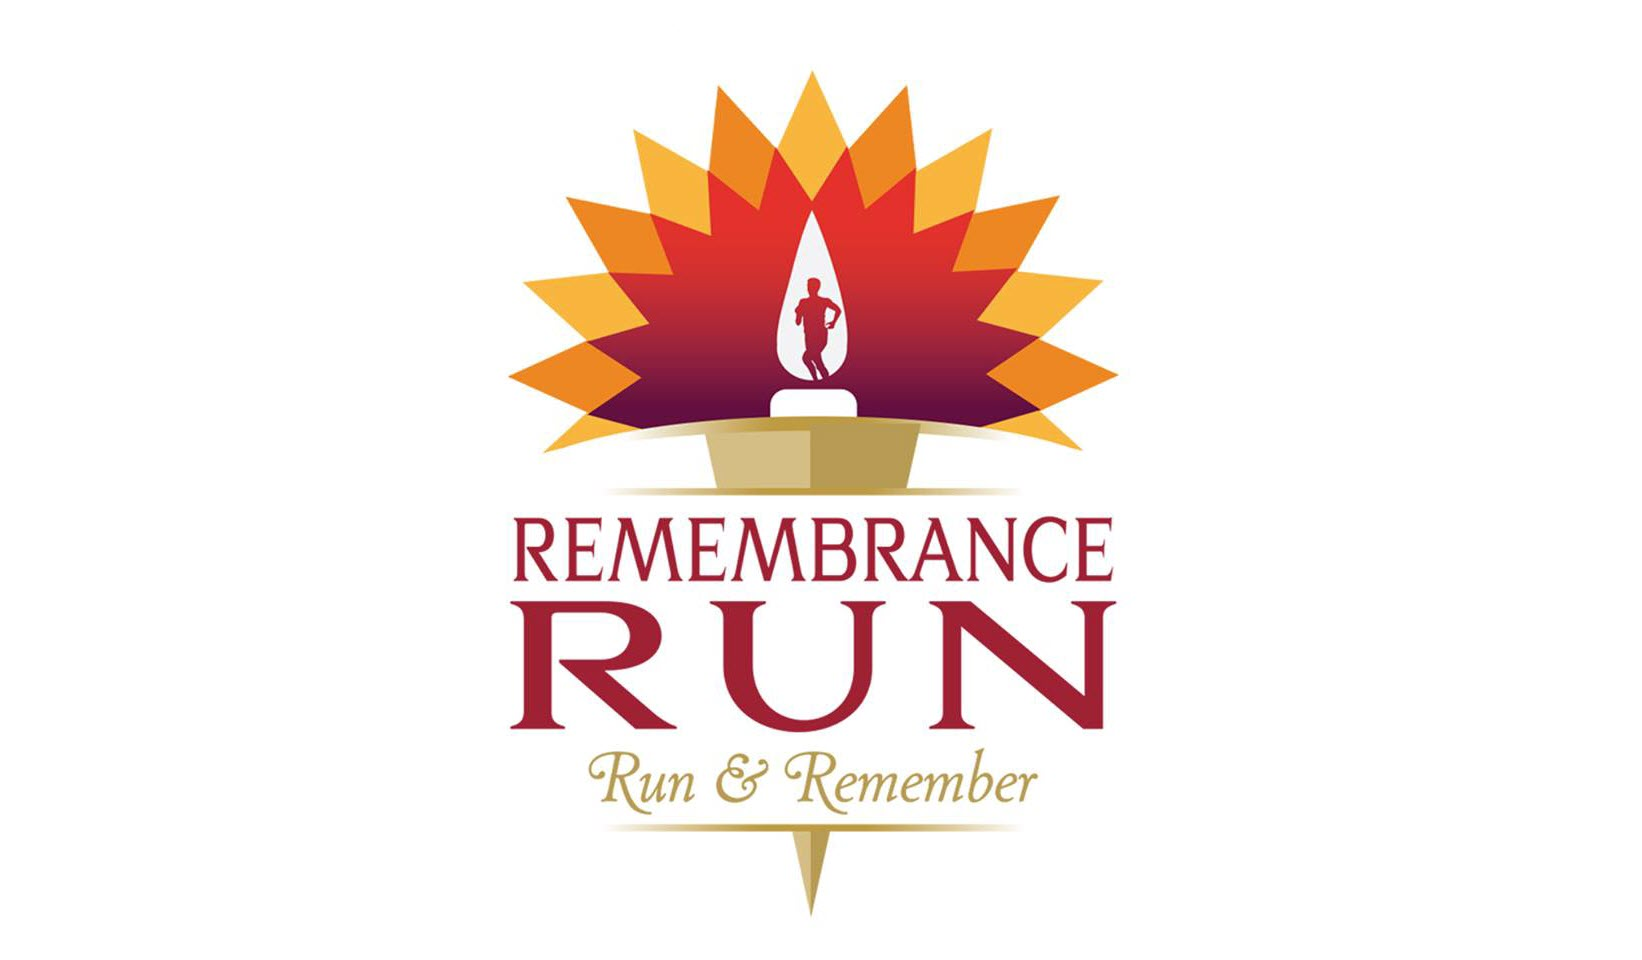 The 2020 Remembrance Run Goes Virtual